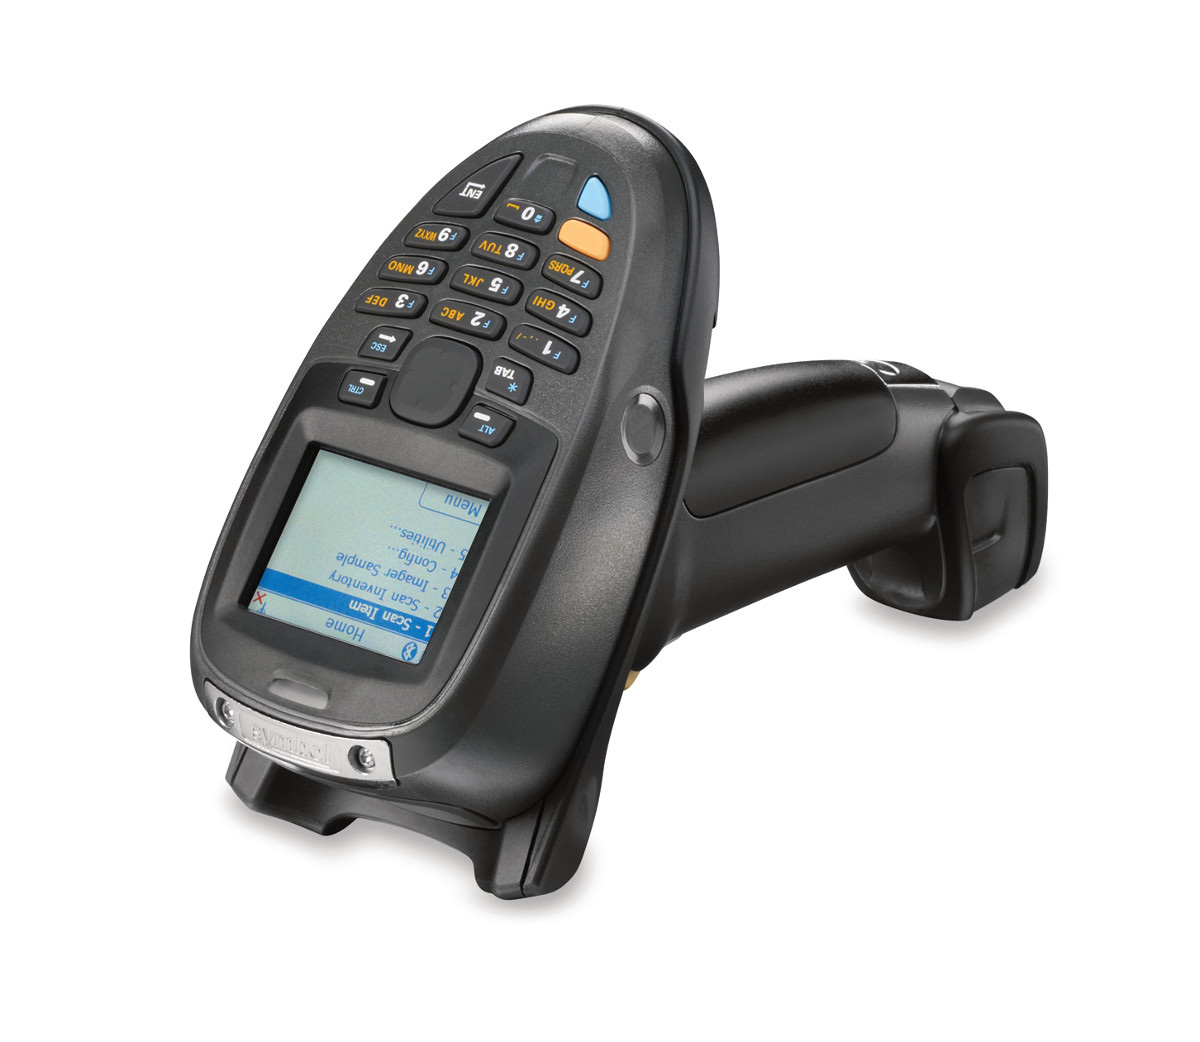 MT2000 Mobile Terminals